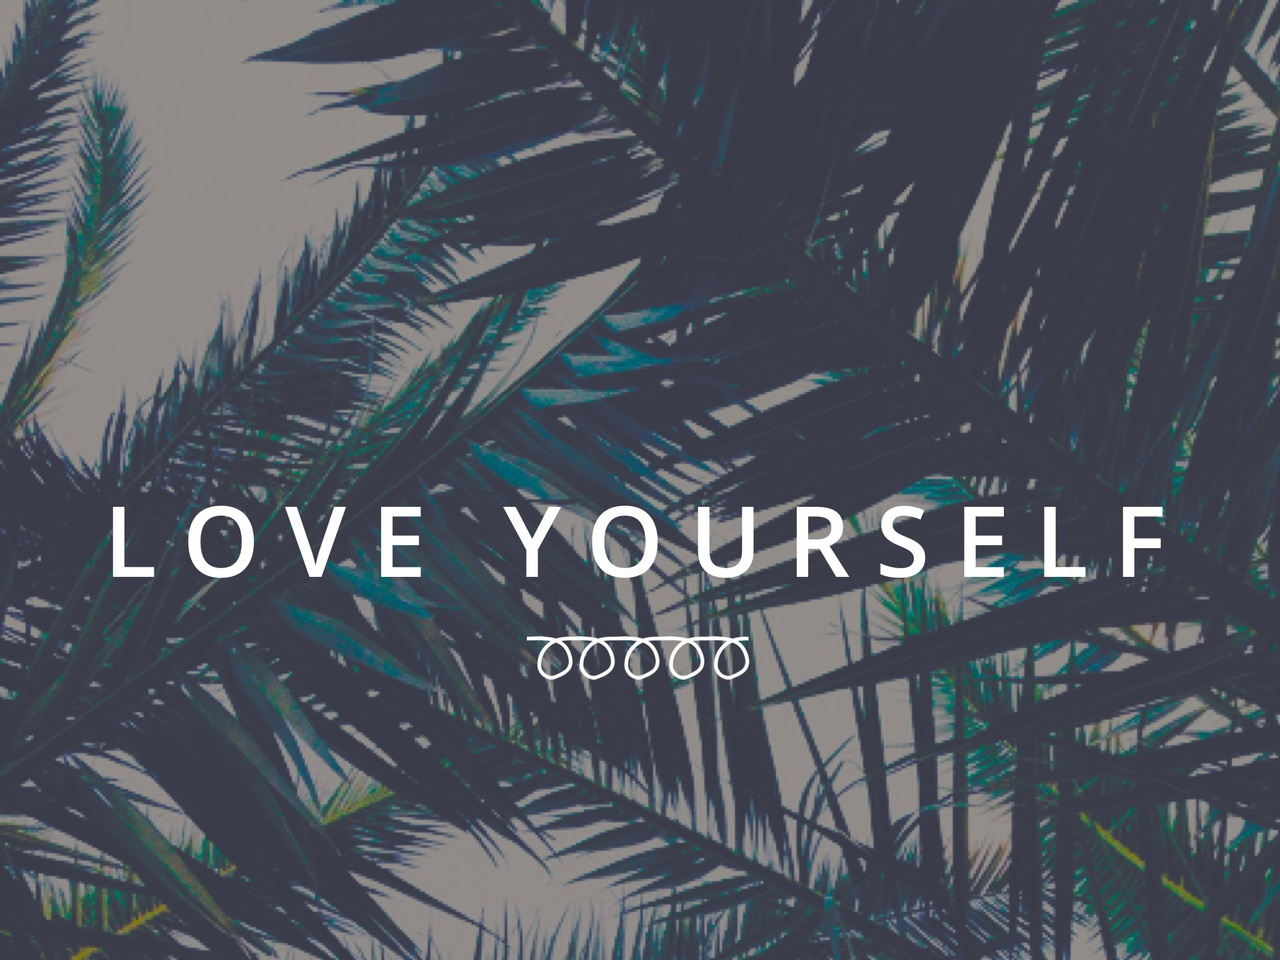 Love Yourself Quotes Wallpaper : Weheartit Wallpaper www.pixshark.com - Images Galleries With A Bite!